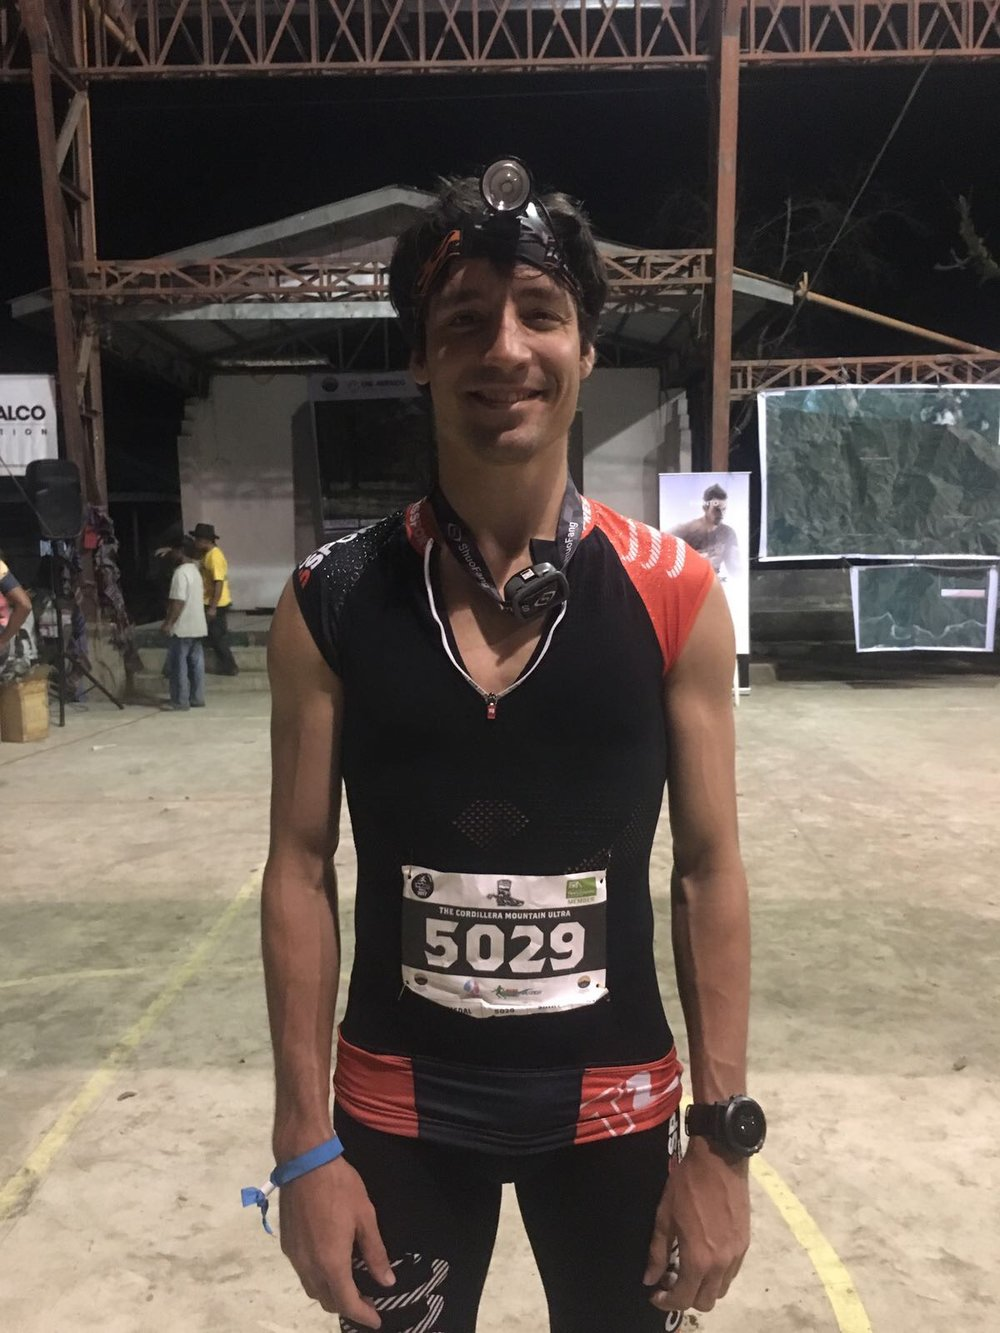 Gaspard Dessy is the new points leader in the men's Asia Trail Master championship